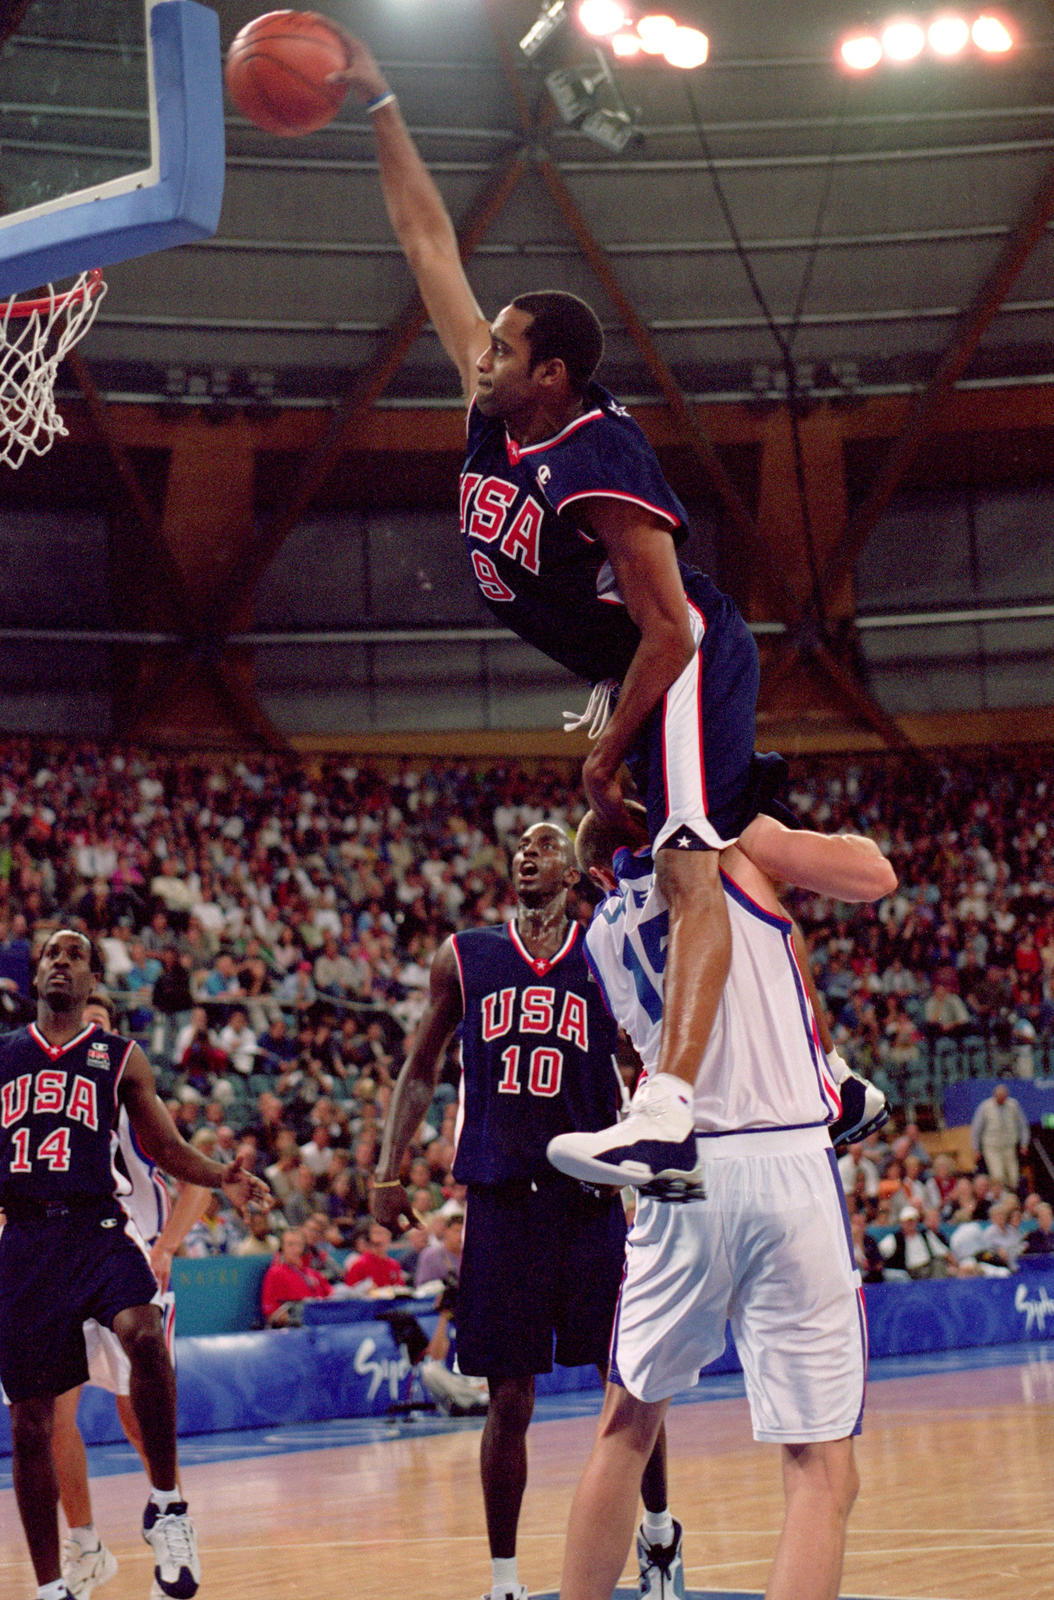 Vince Carter's famous dunk in Sydney